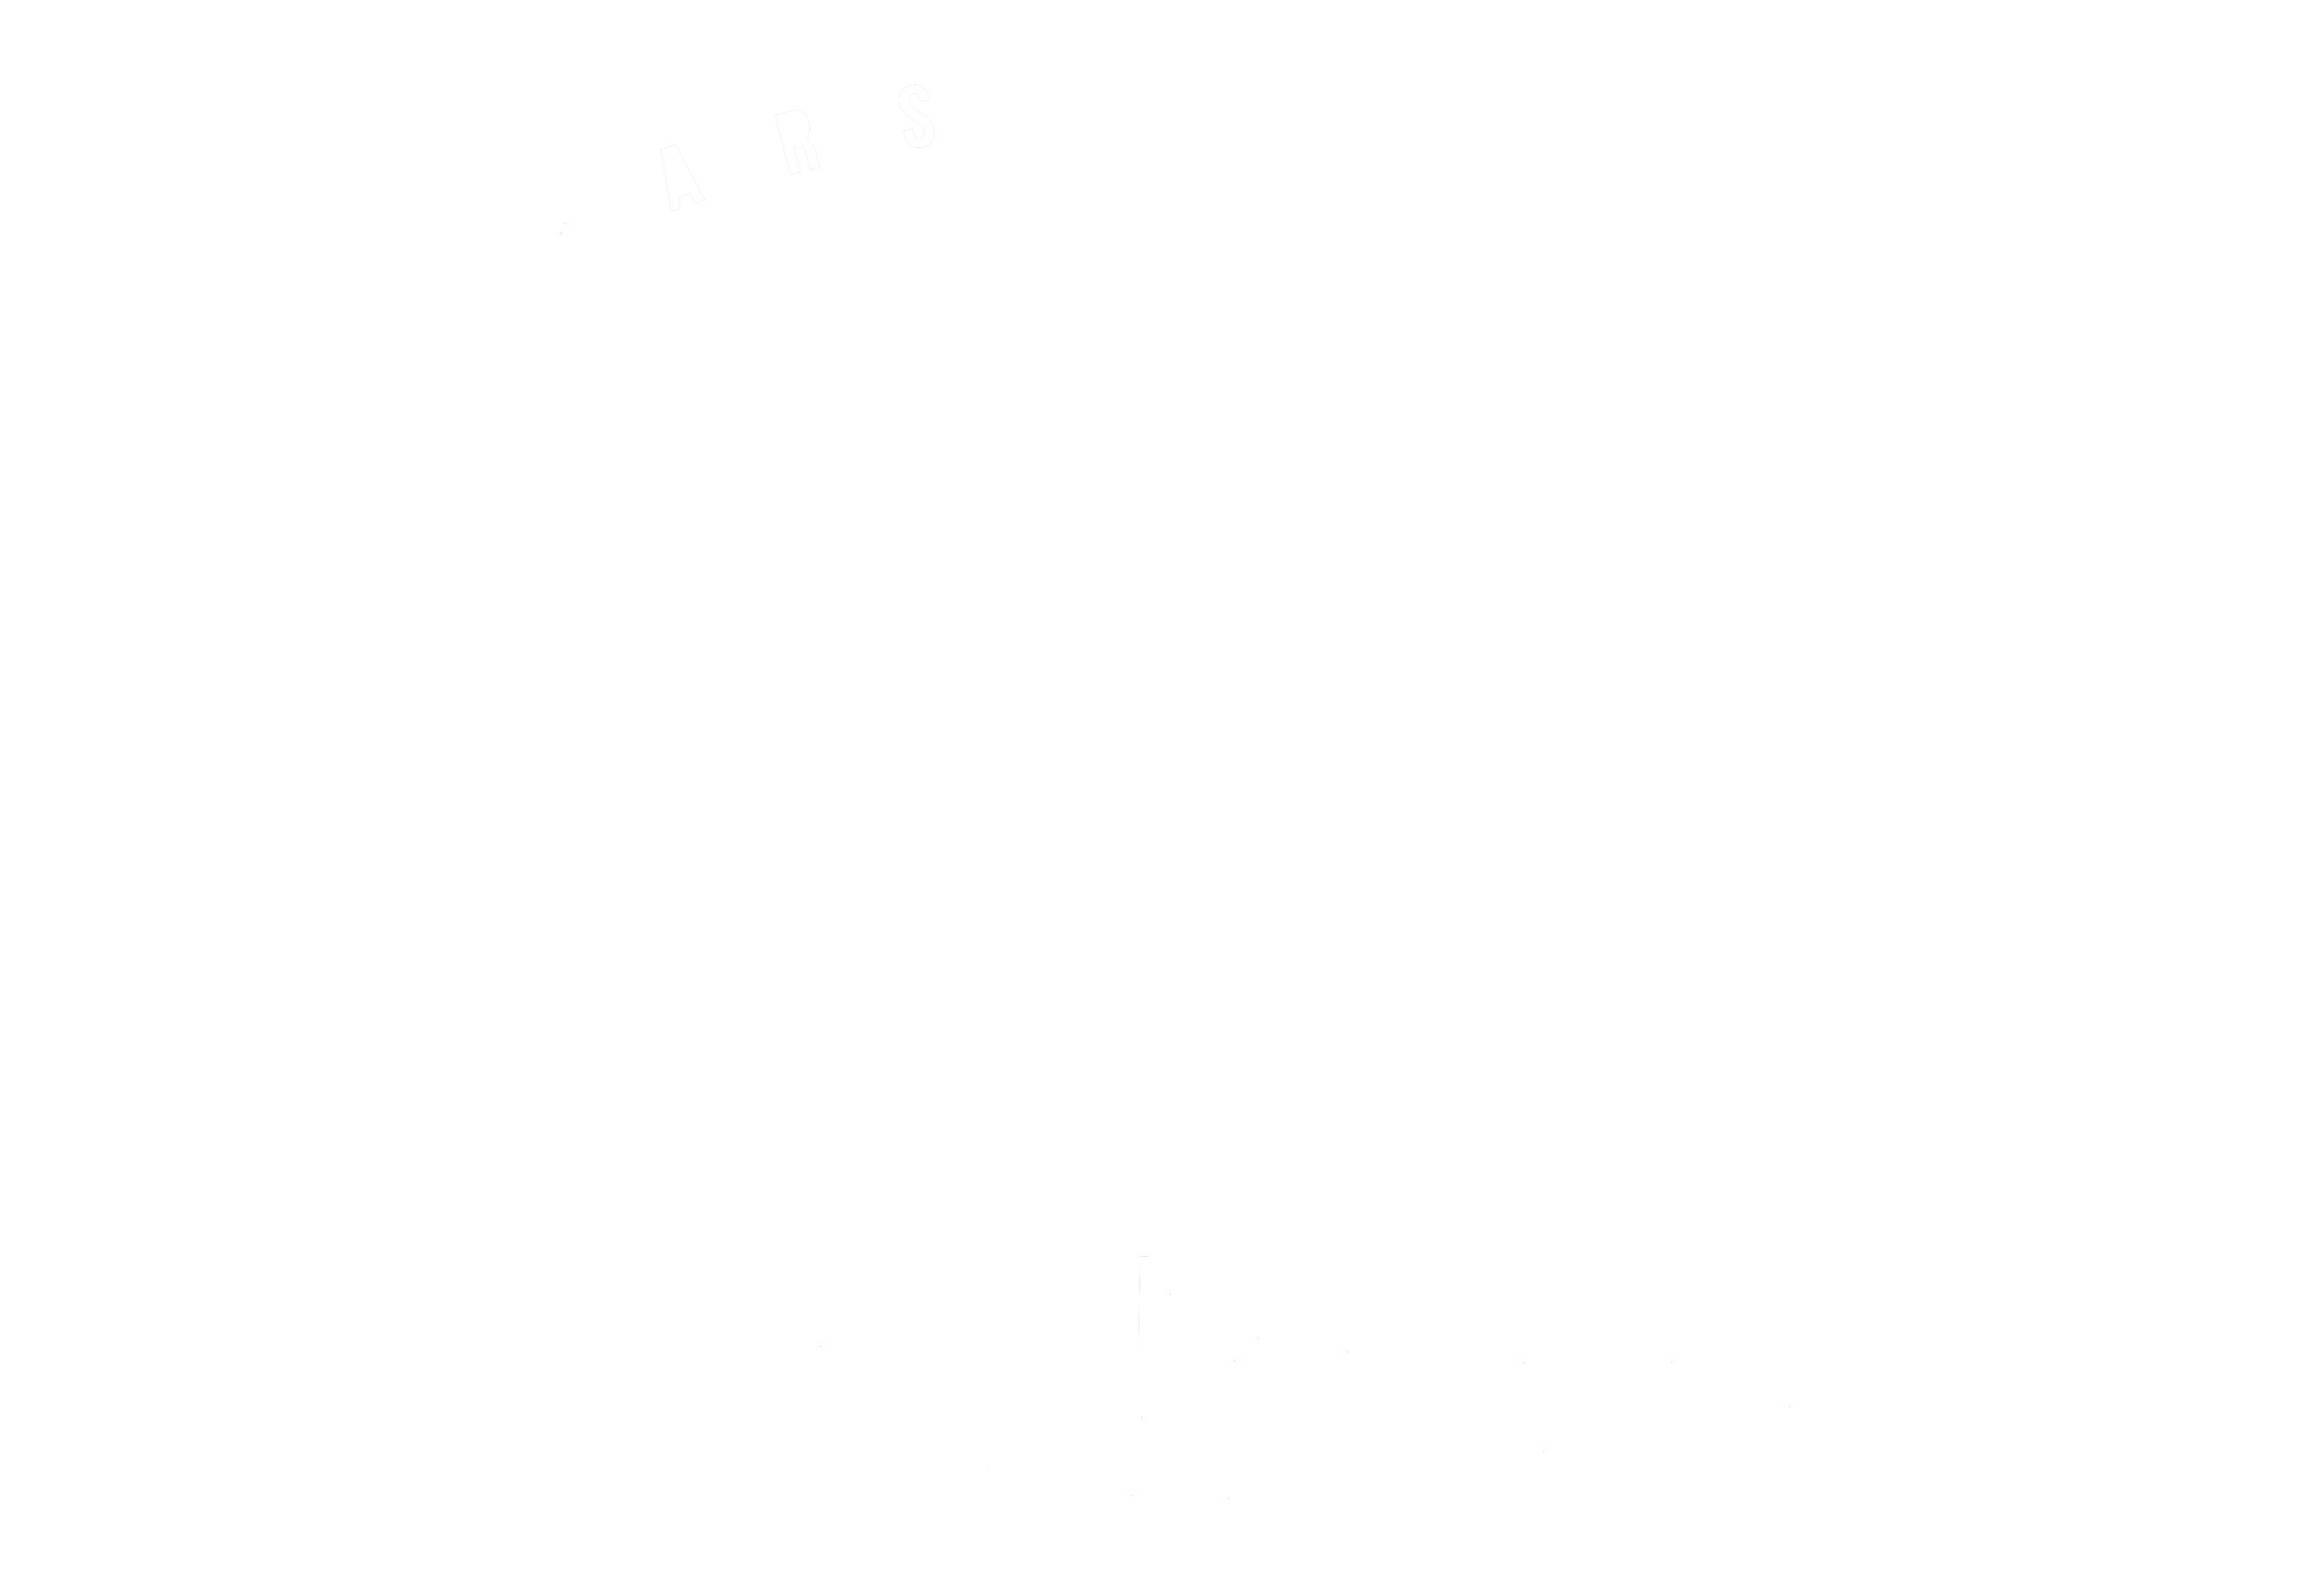 The Sparklings